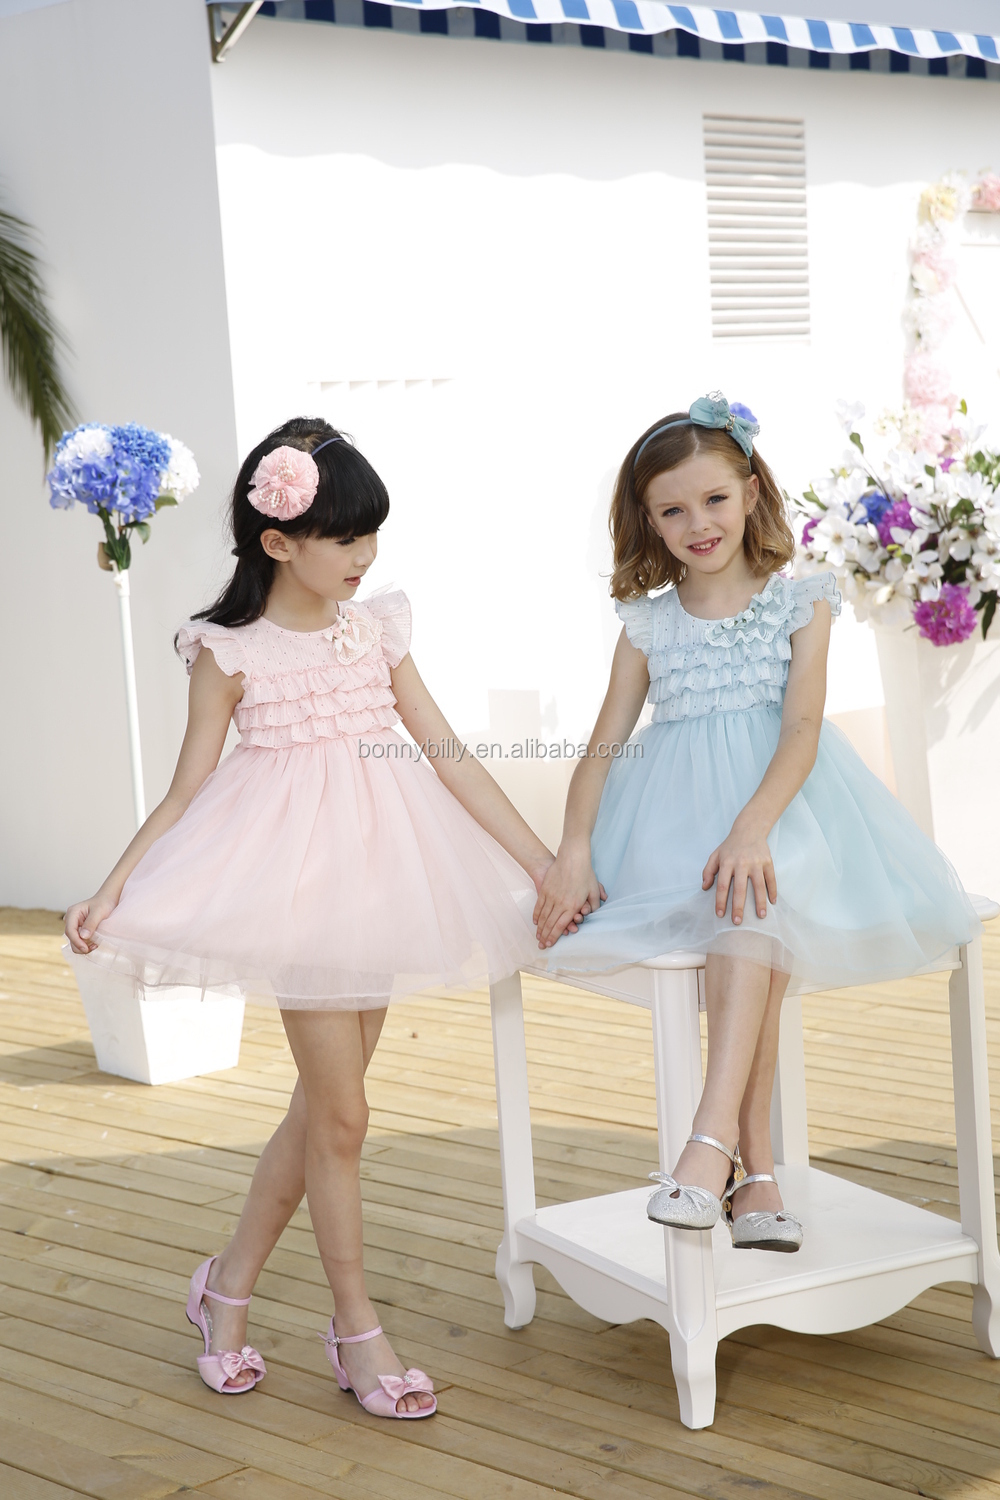 New Design Lovely Baby Dress Chiffon Kind Girls Summer